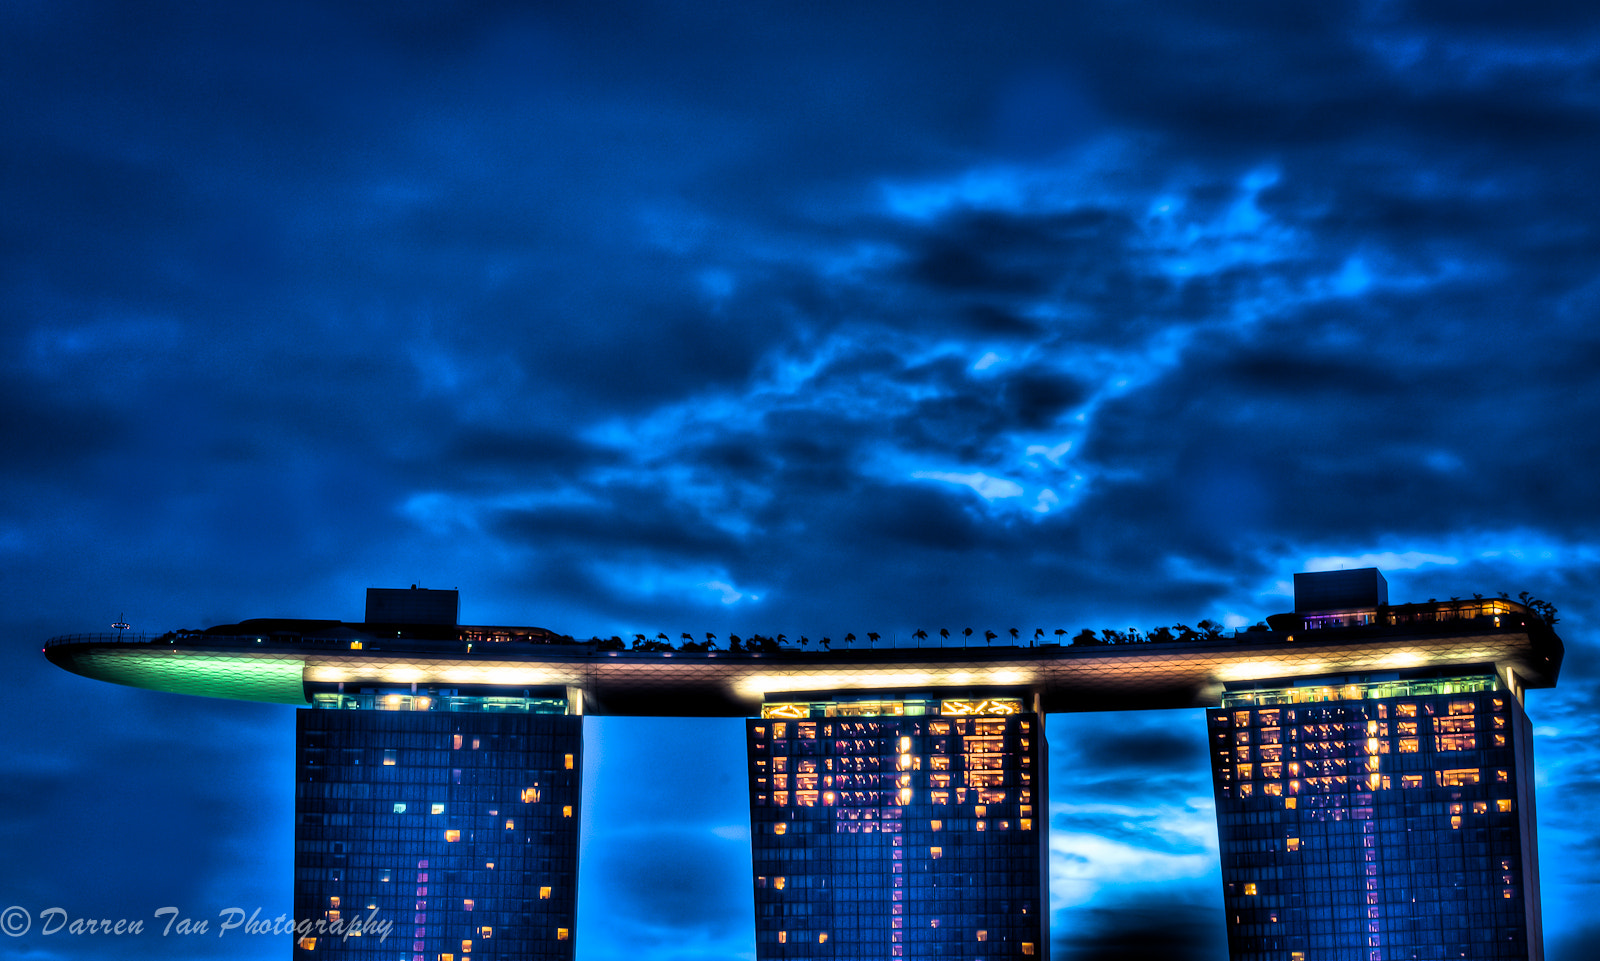 Photograph The Sky Park of Singapore @ Marina Bay Sands by DARREN TAN on 500px